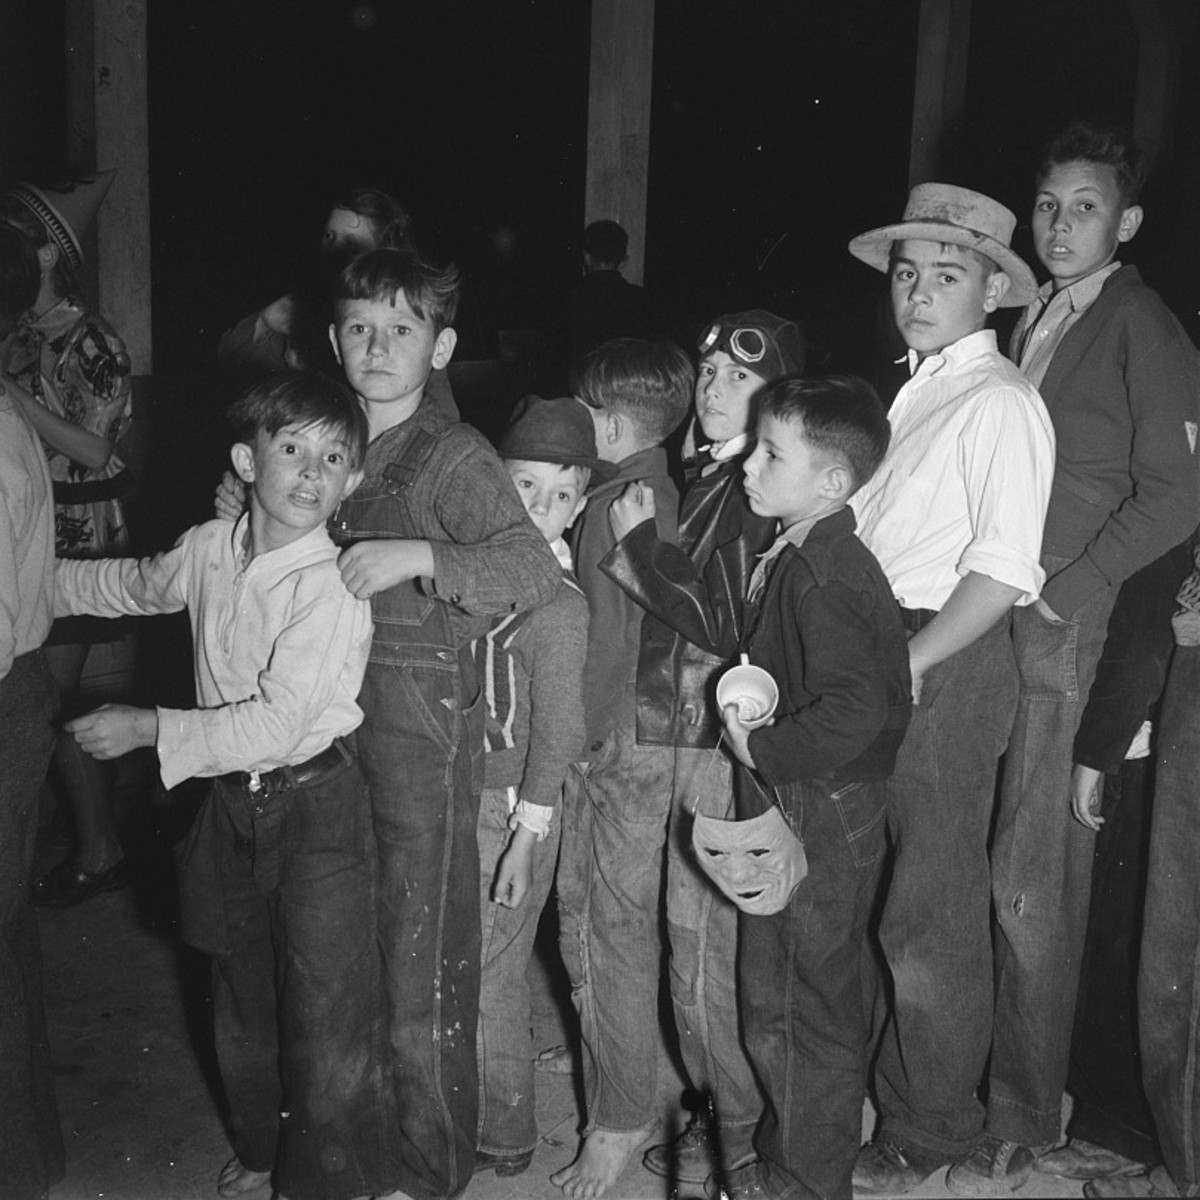 A crowd of boys pushing through a crowd at a Halloween party in the 1930s.